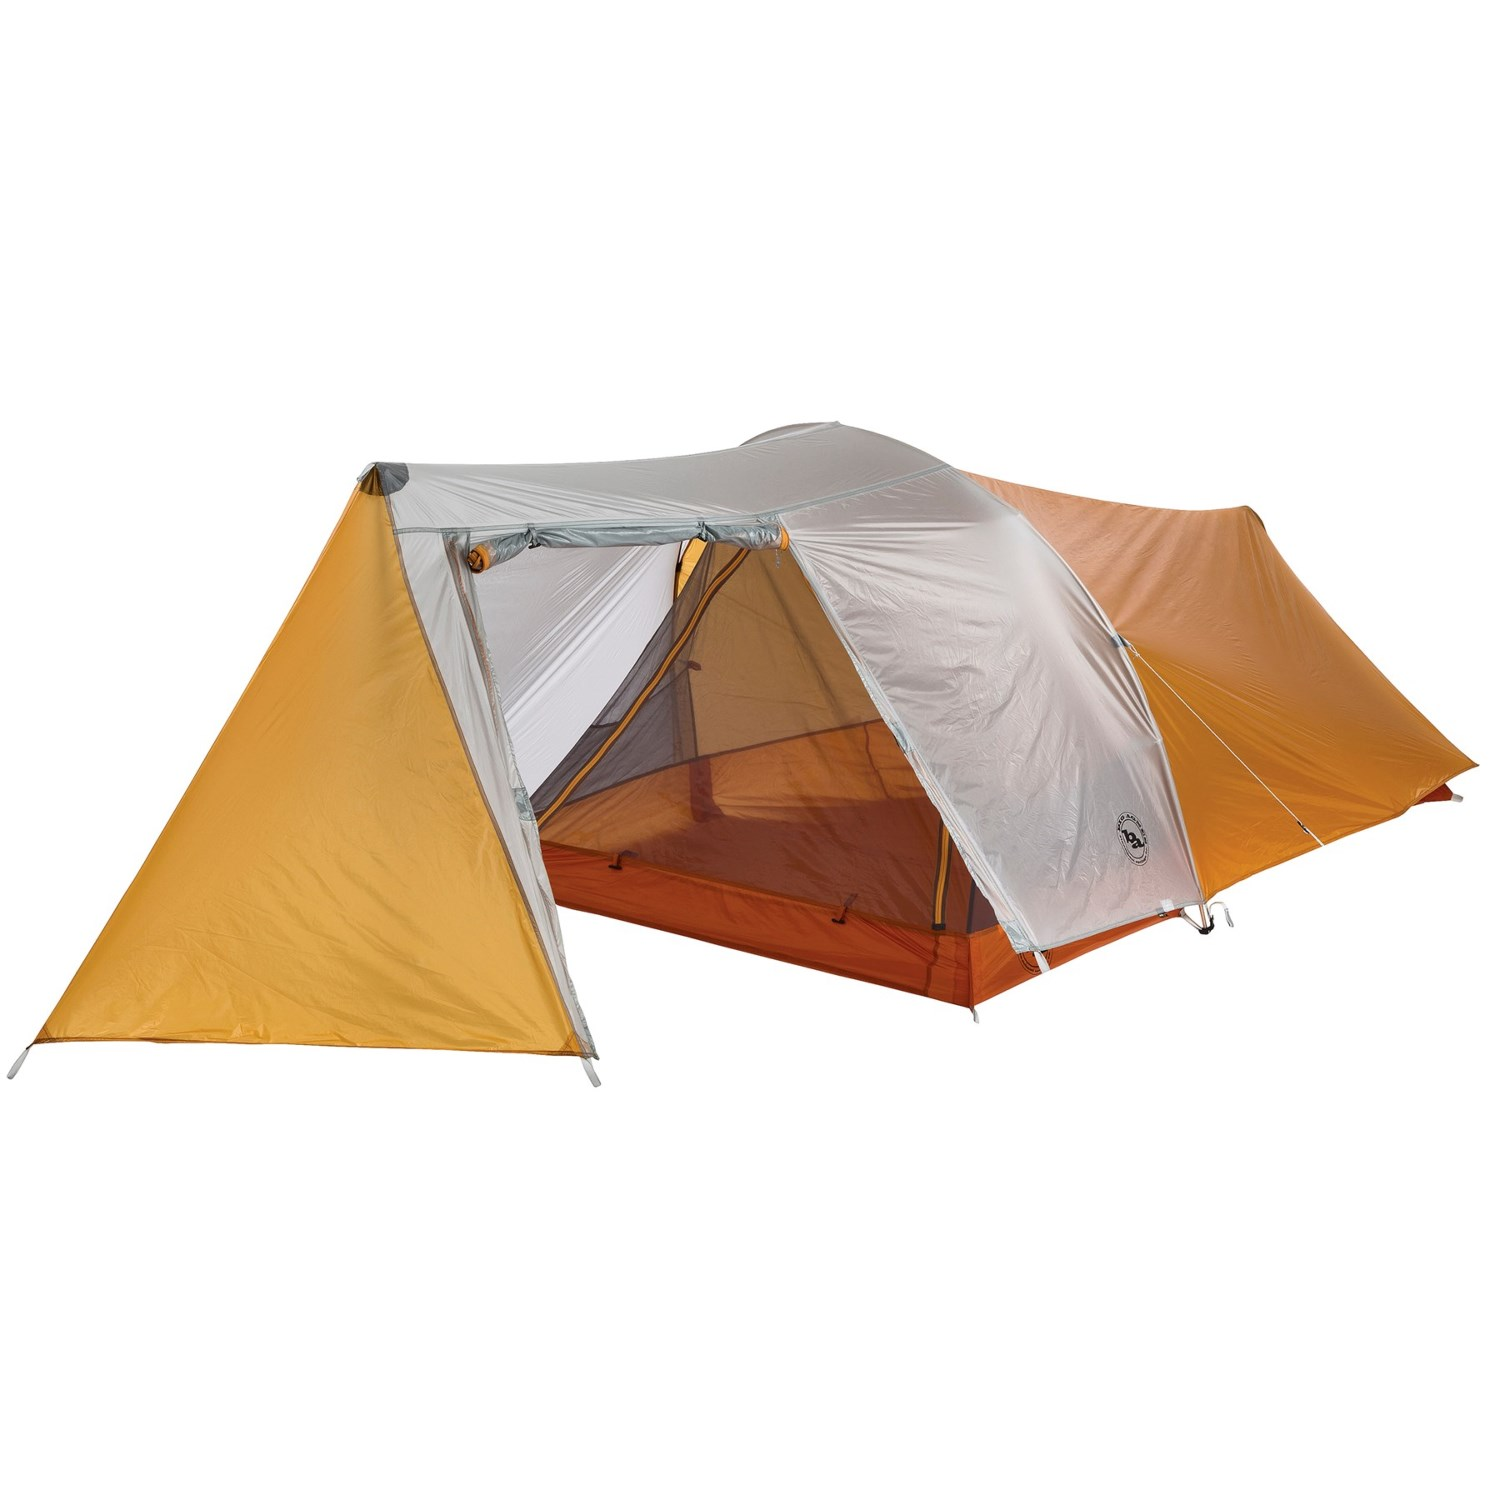 Big Agnes Bitter Springs UL 2 Tent with Footprint - 2-Person 3-Season  sc 1 st  Sierra Trading Post : 2 person tent with vestibule - memphite.com